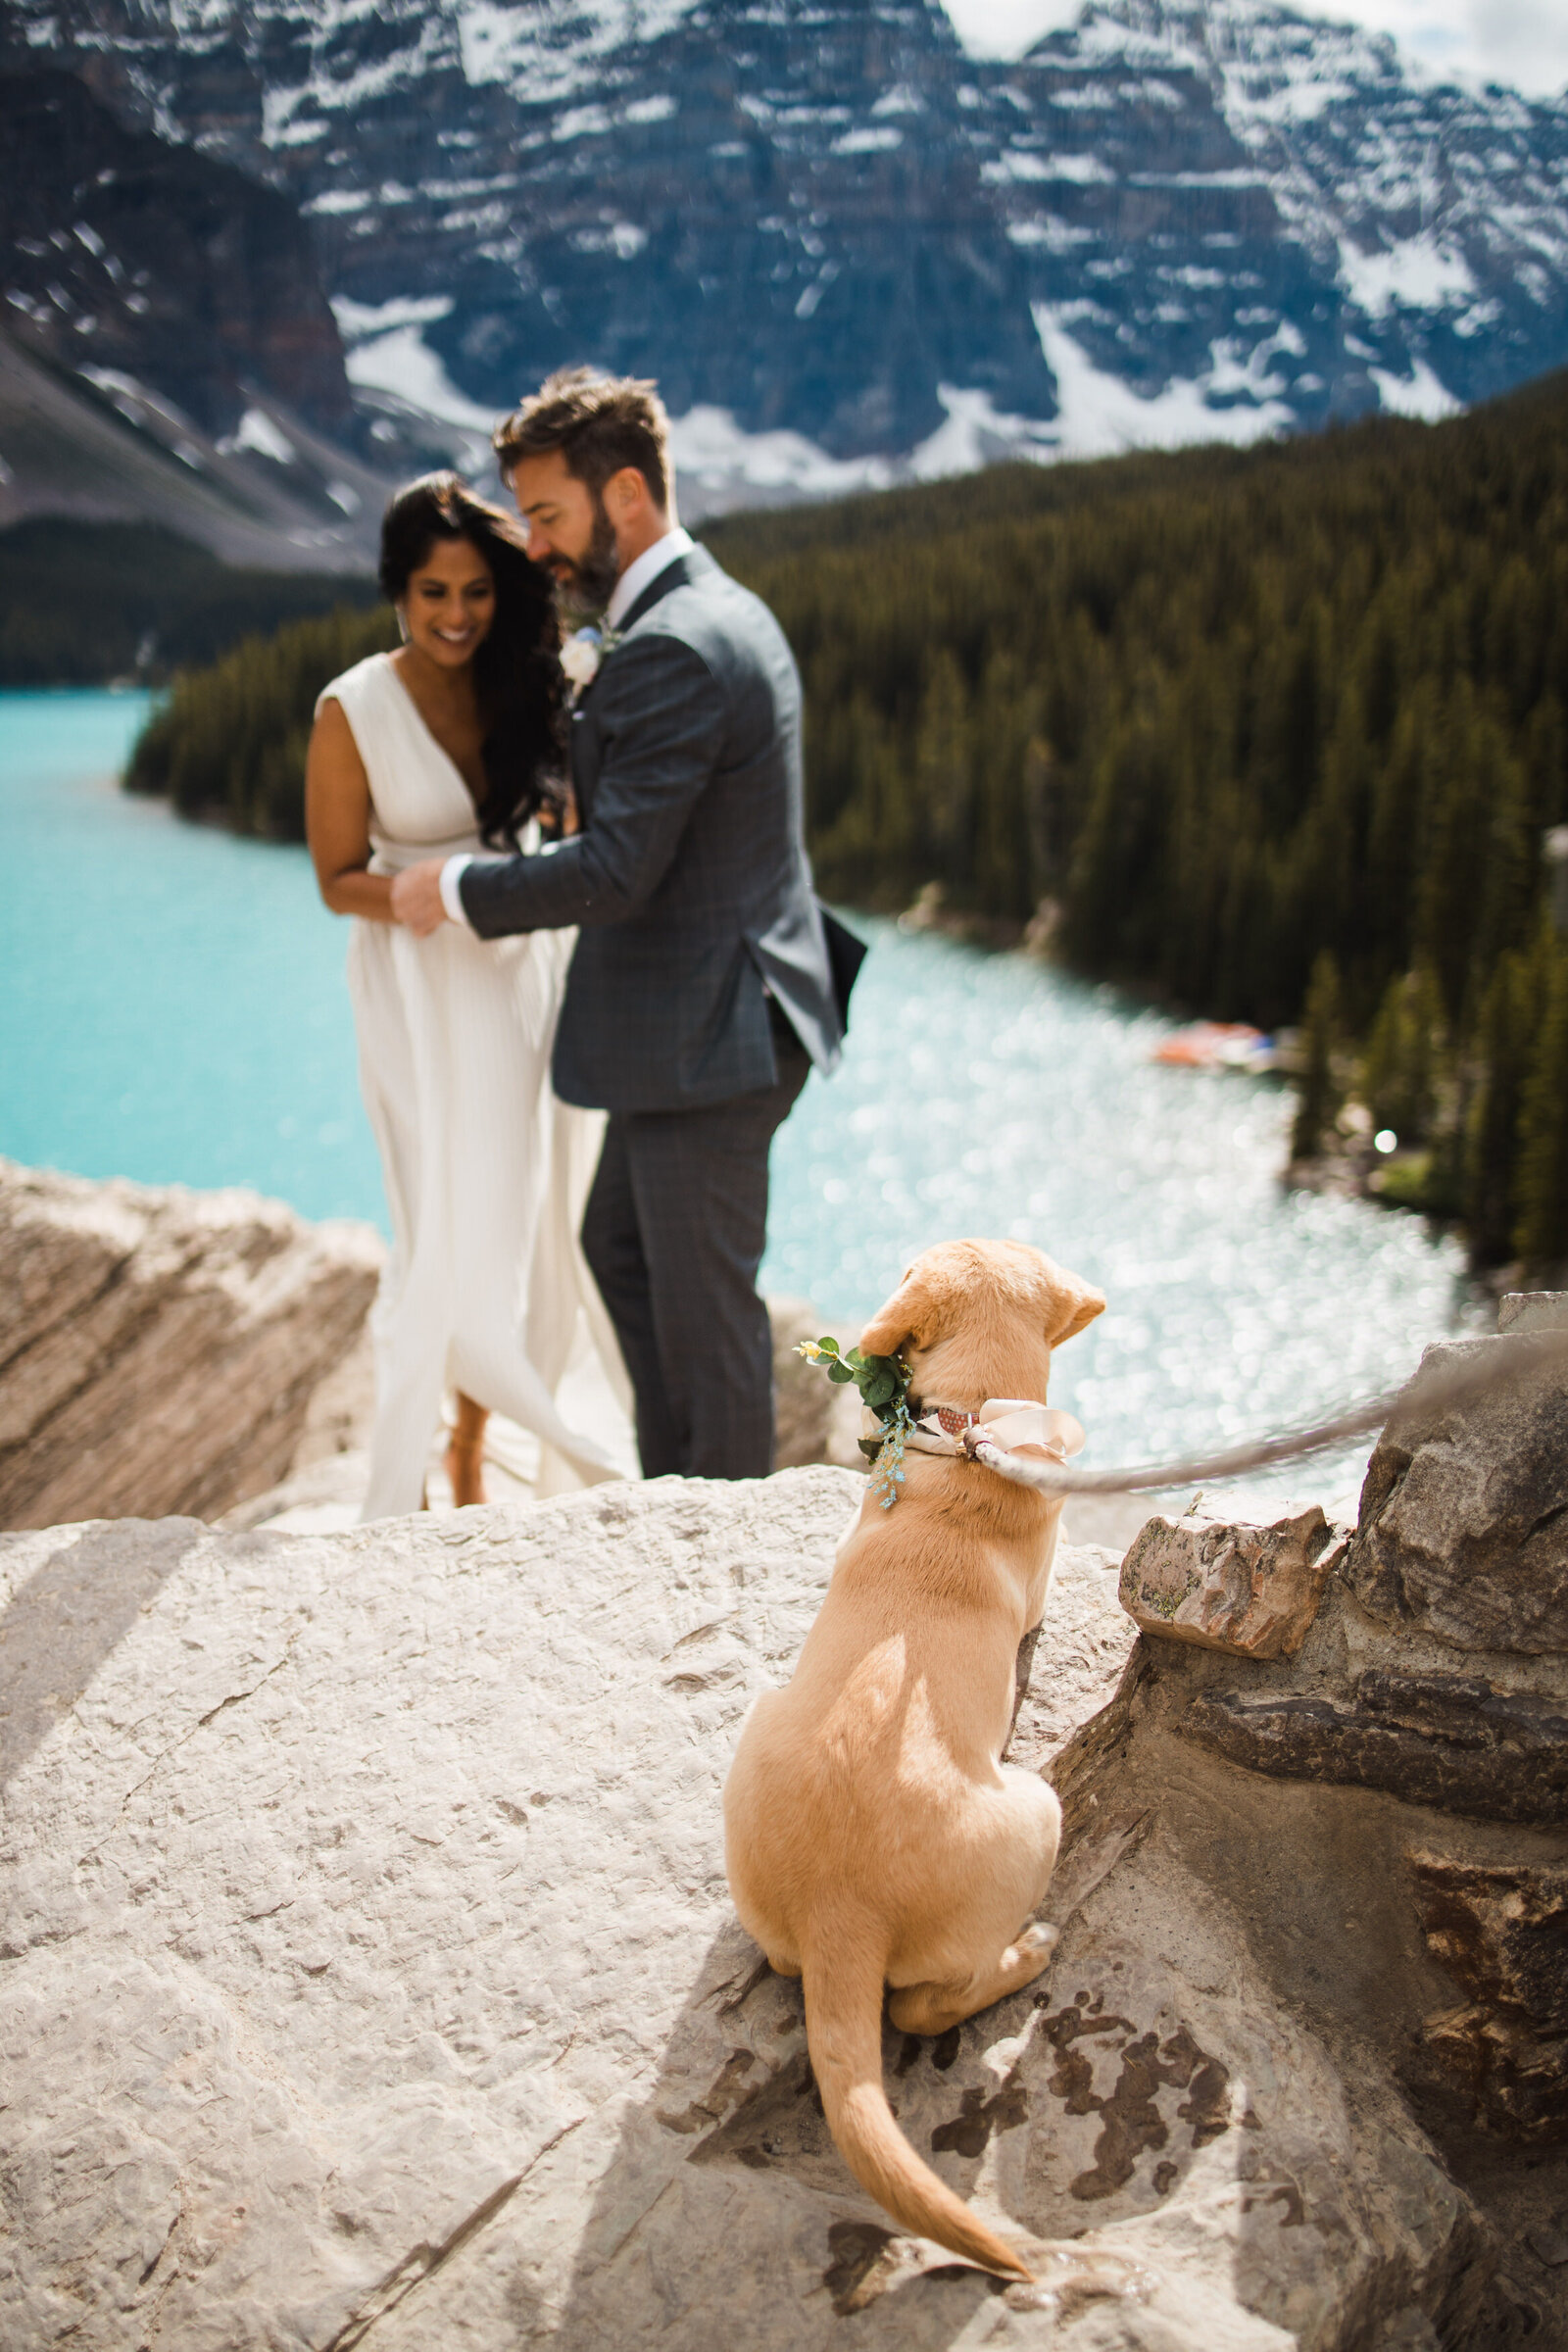 banff.wedding.photographer-8090